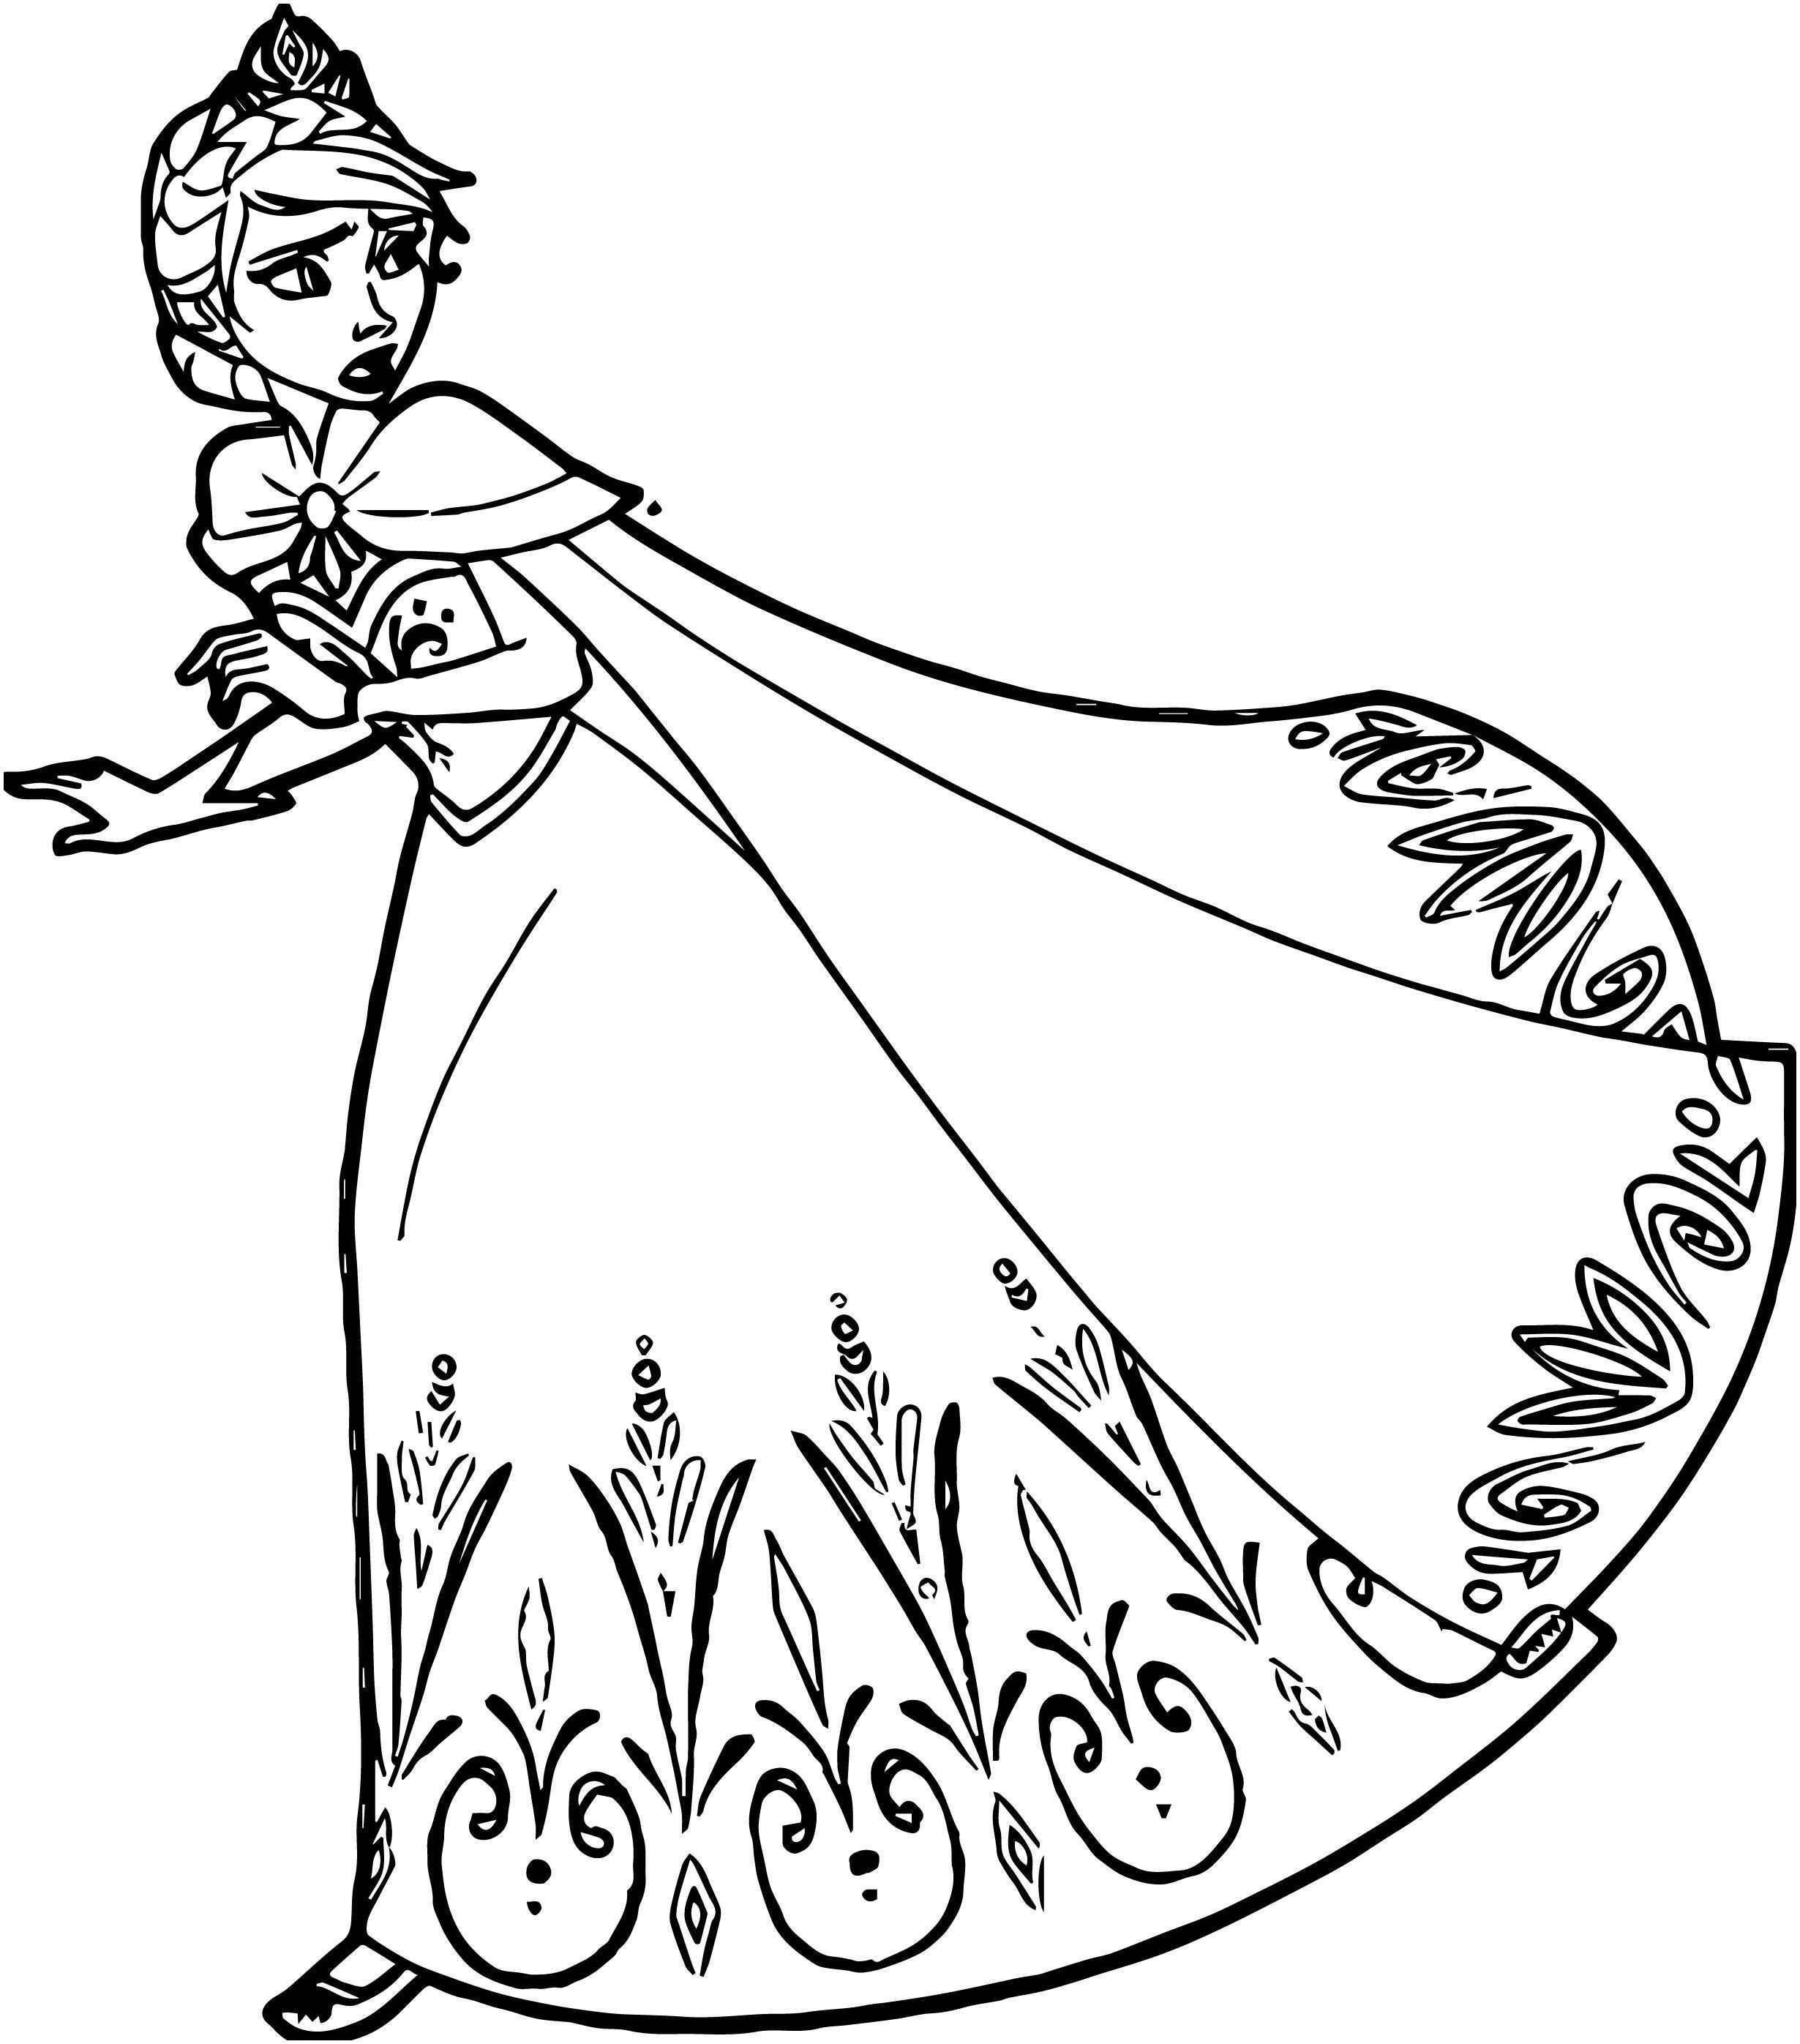 Ausmalbilder Disney Gratis Neu Princess Elsa Coloring Pages Beautiful Elsa Coloring Pages Fotos